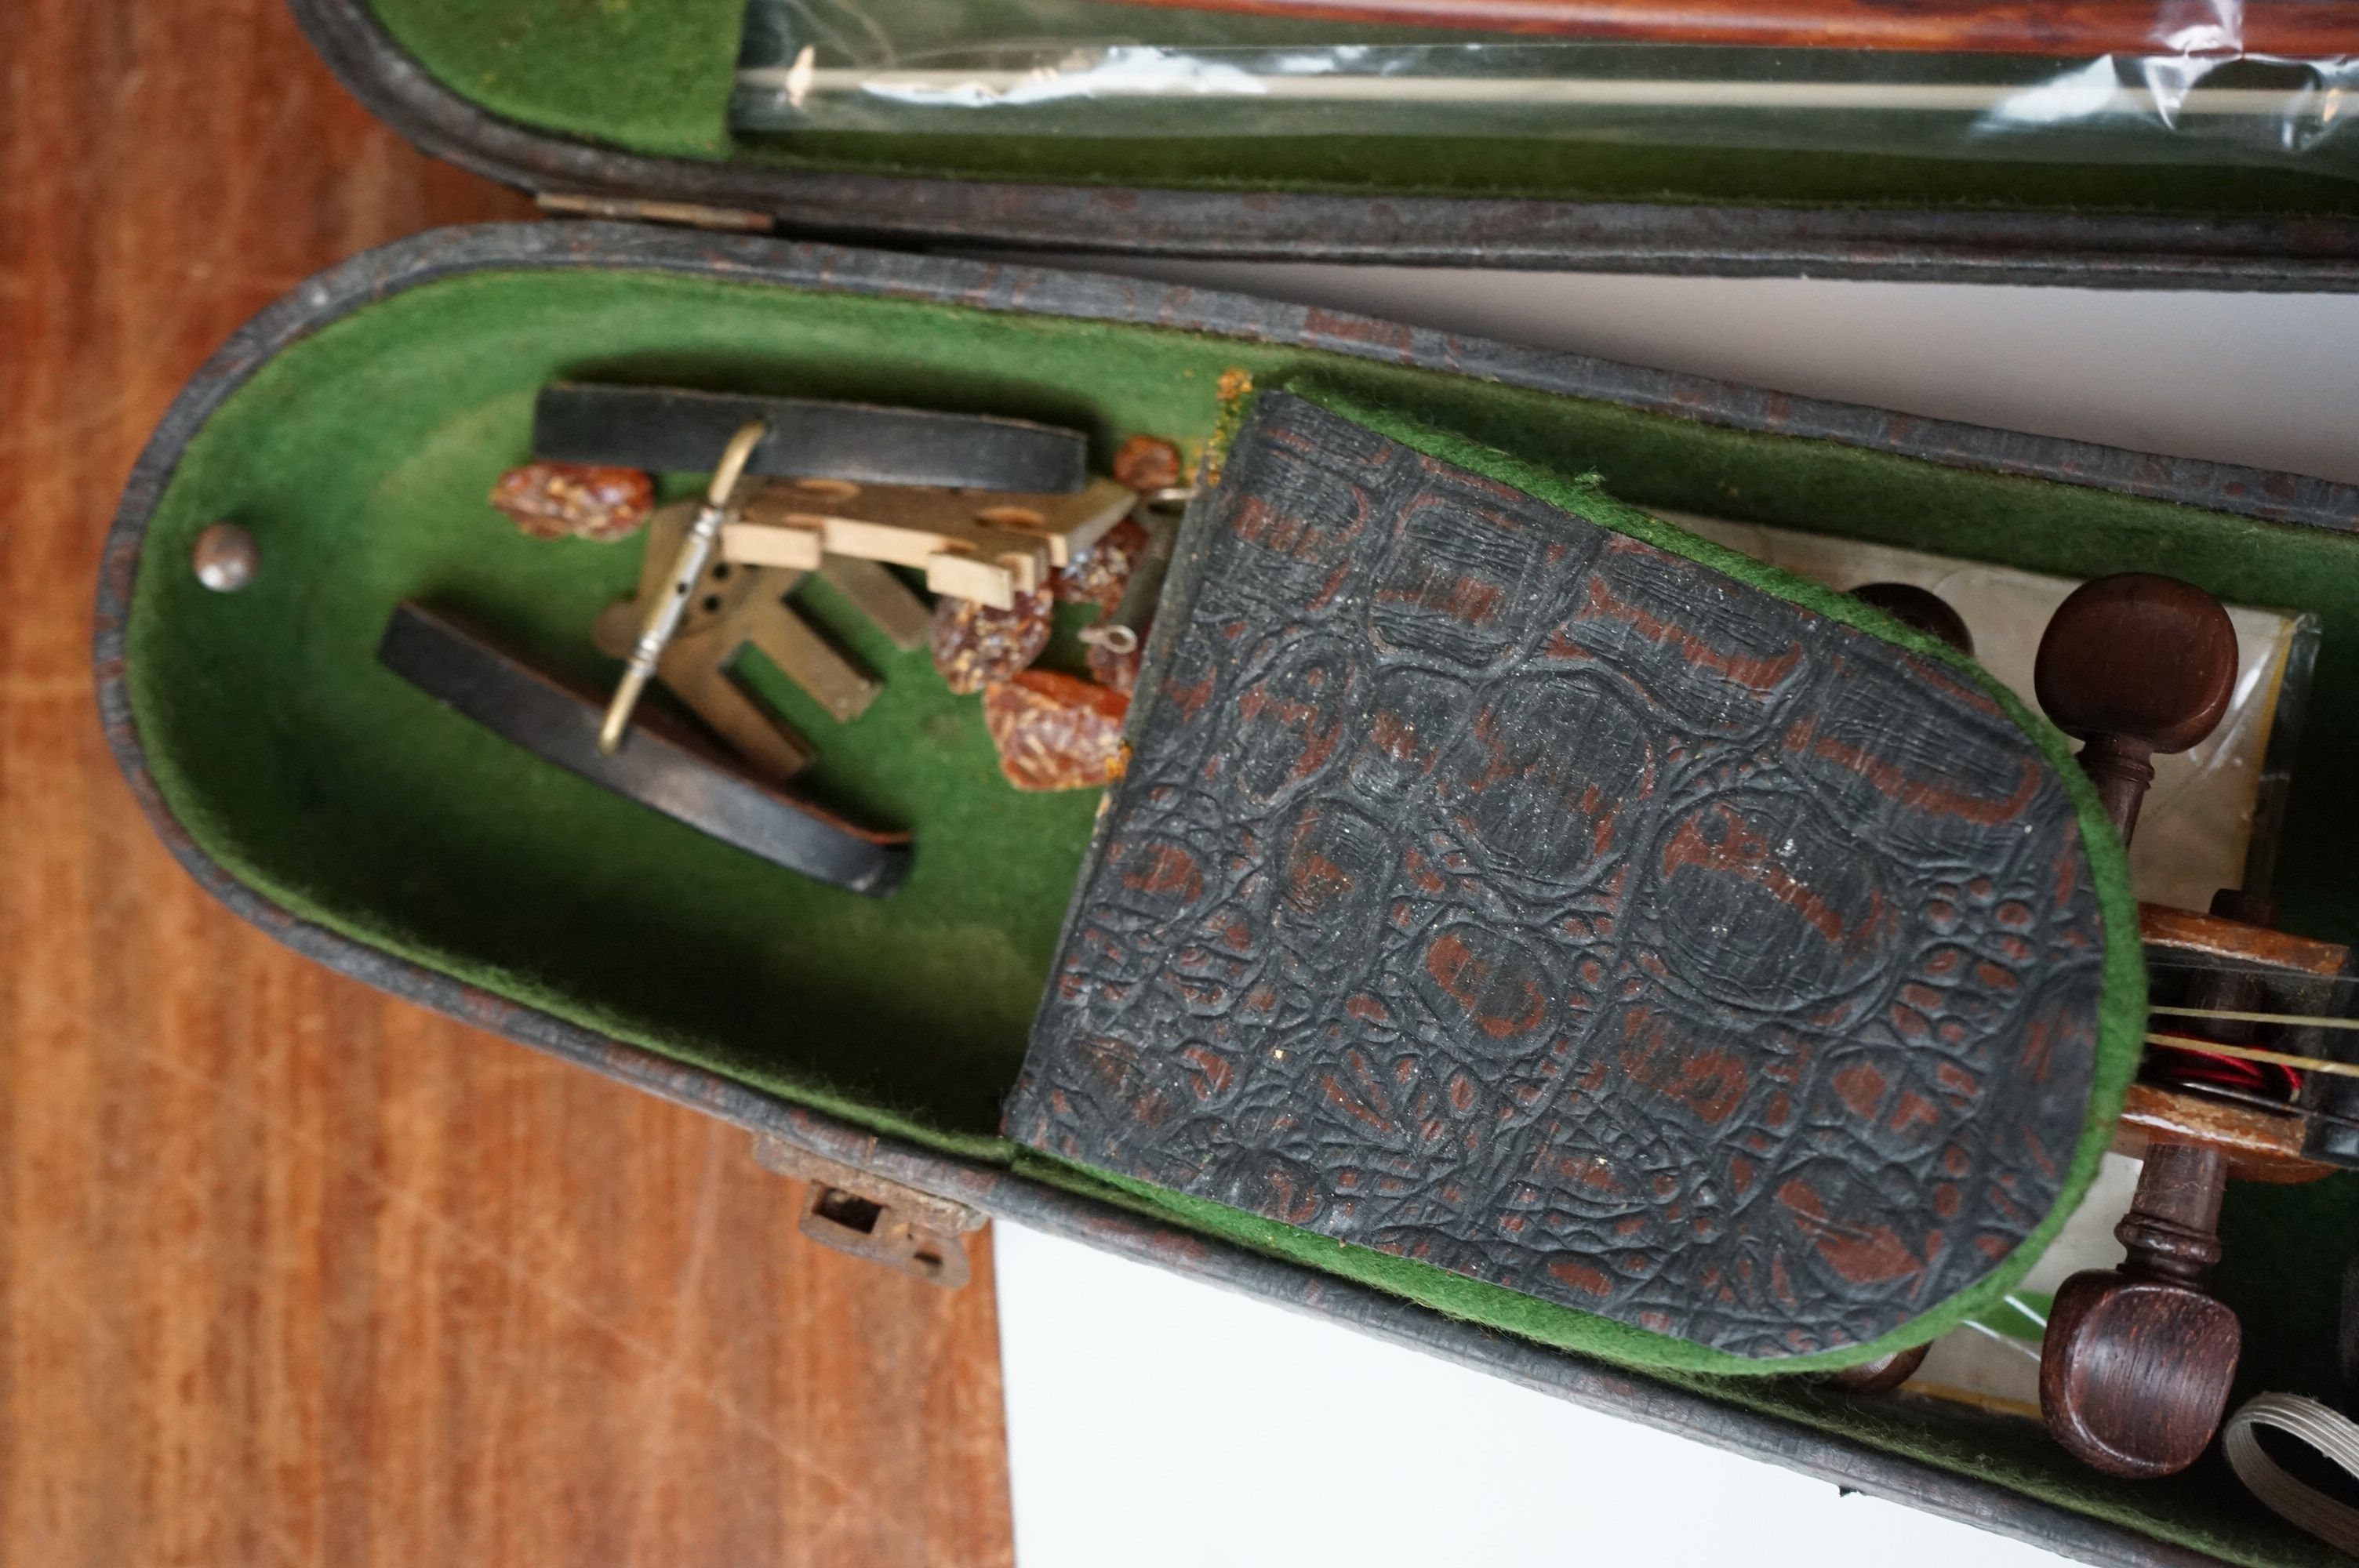 Violin with Two Bows in a Vintage Snakeskin effect case - Image 6 of 7